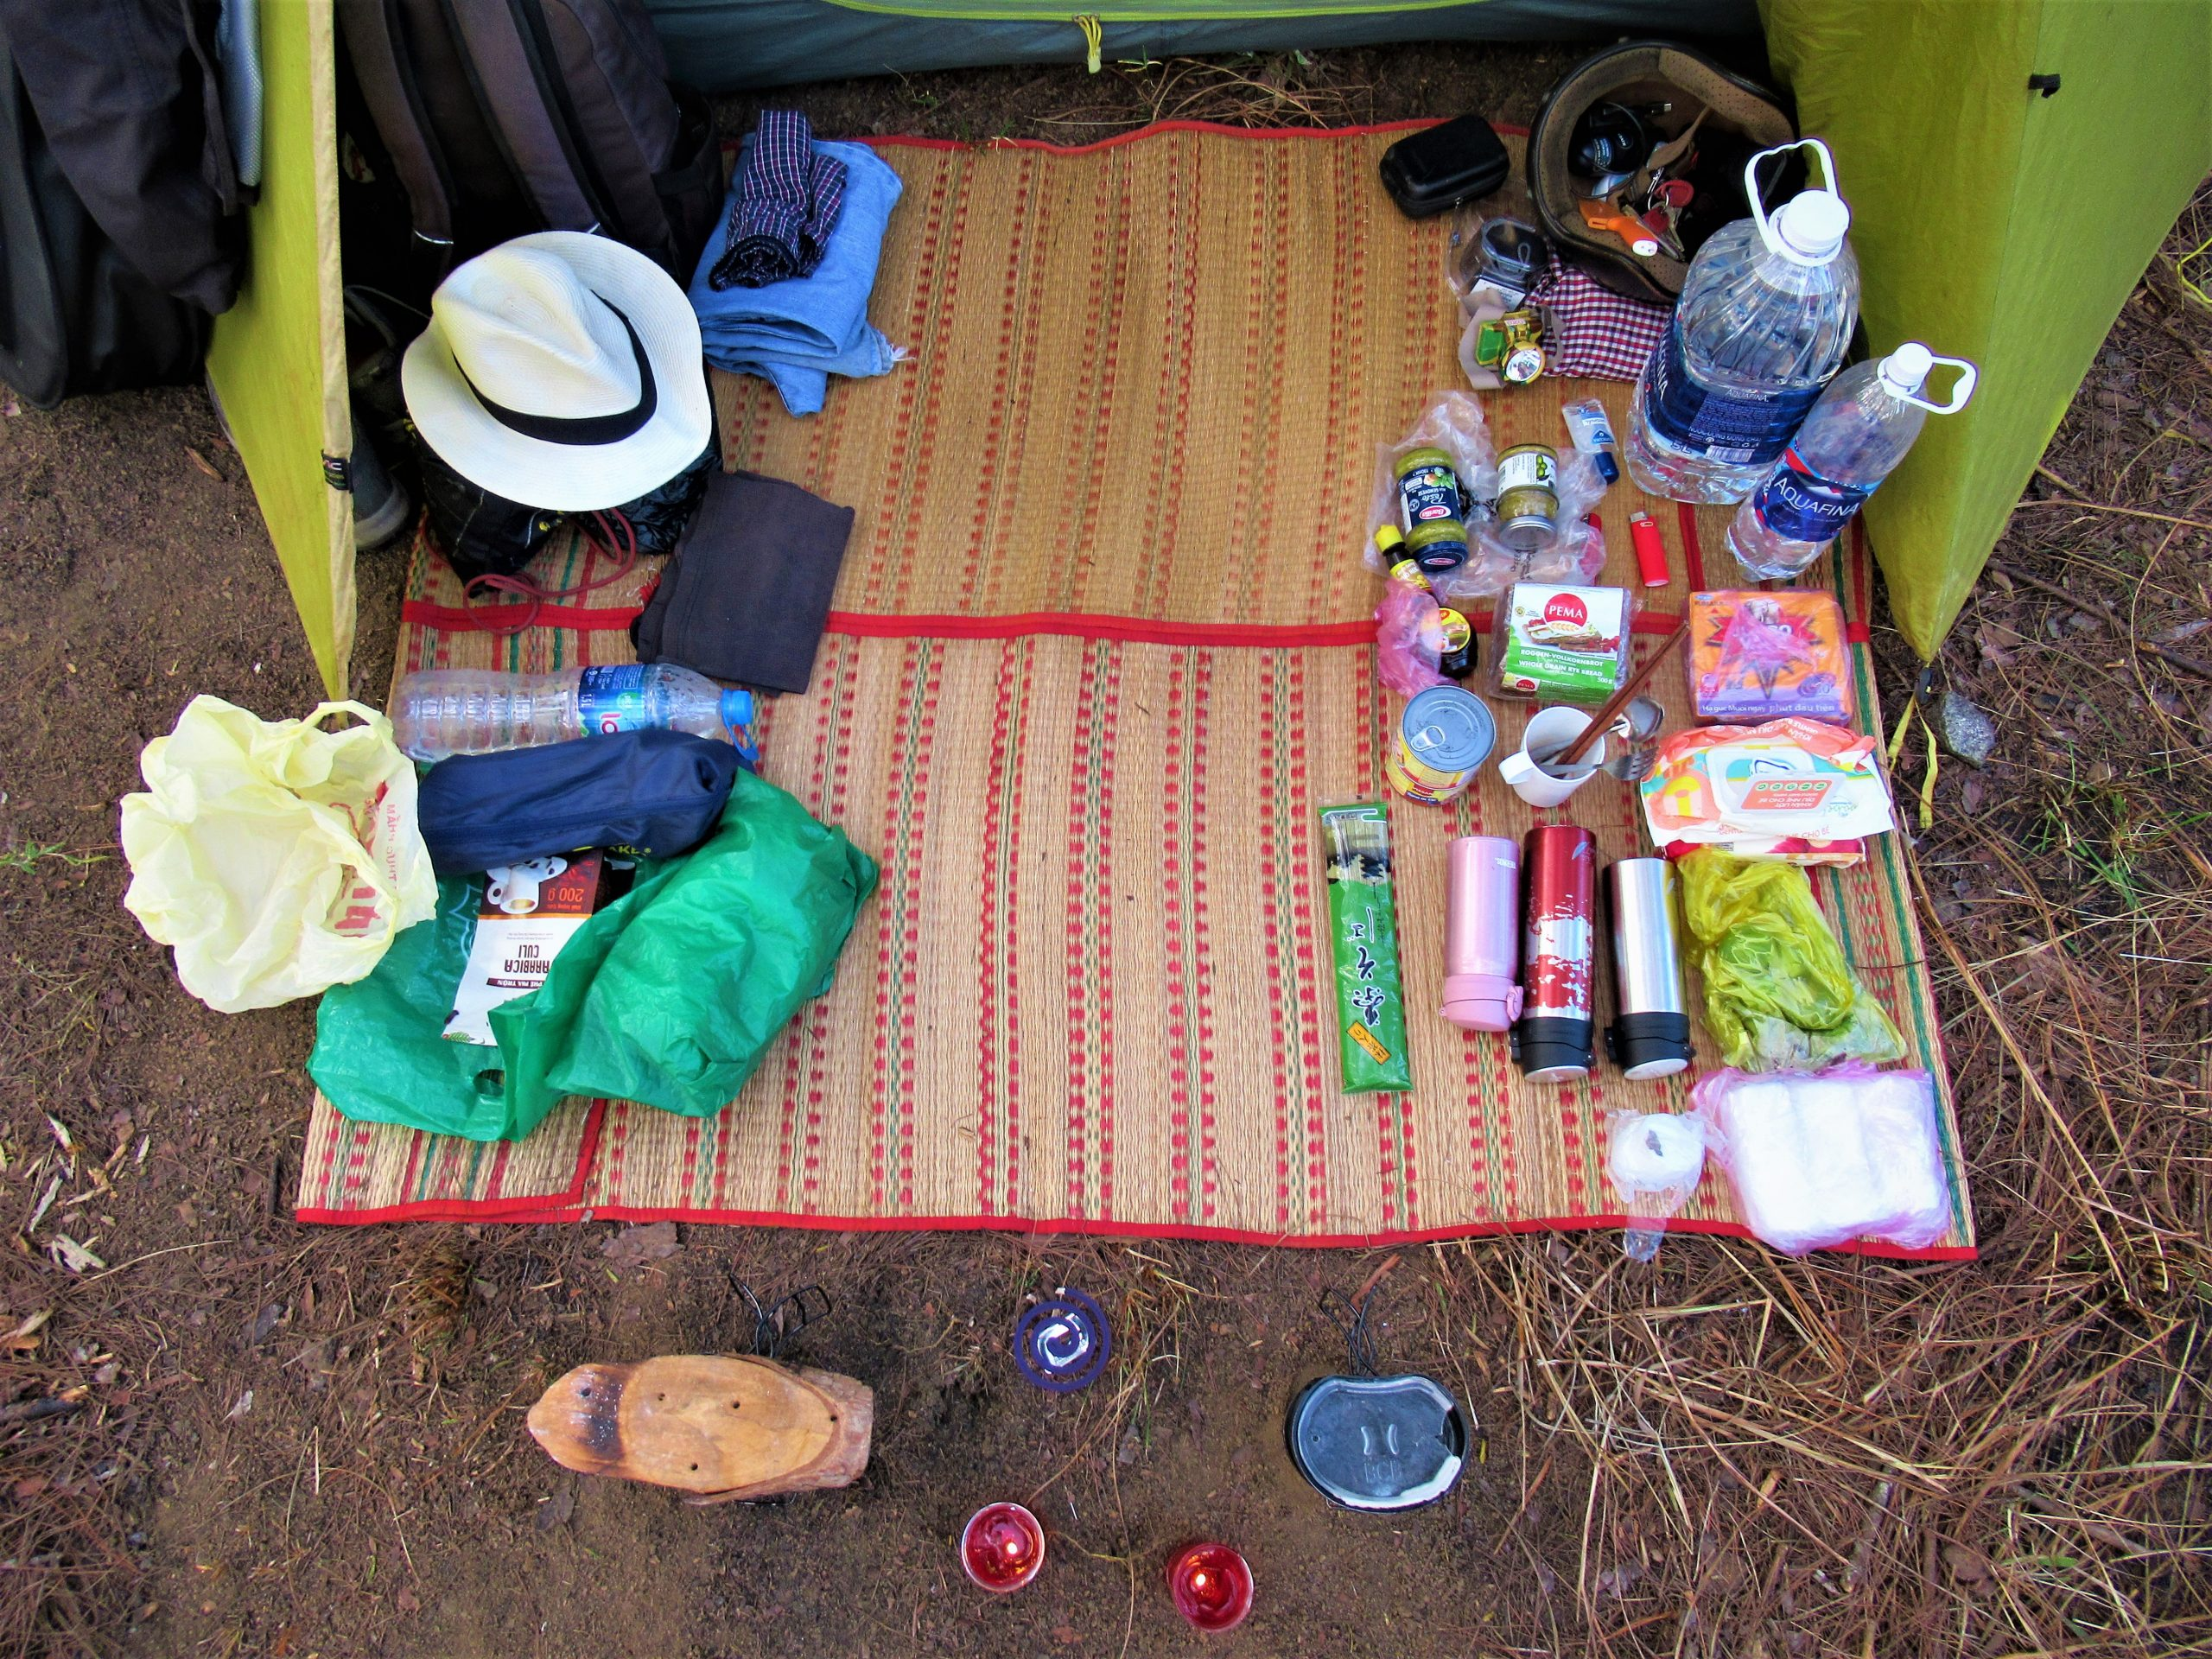 Equipment-check for motocamping in Vietnam